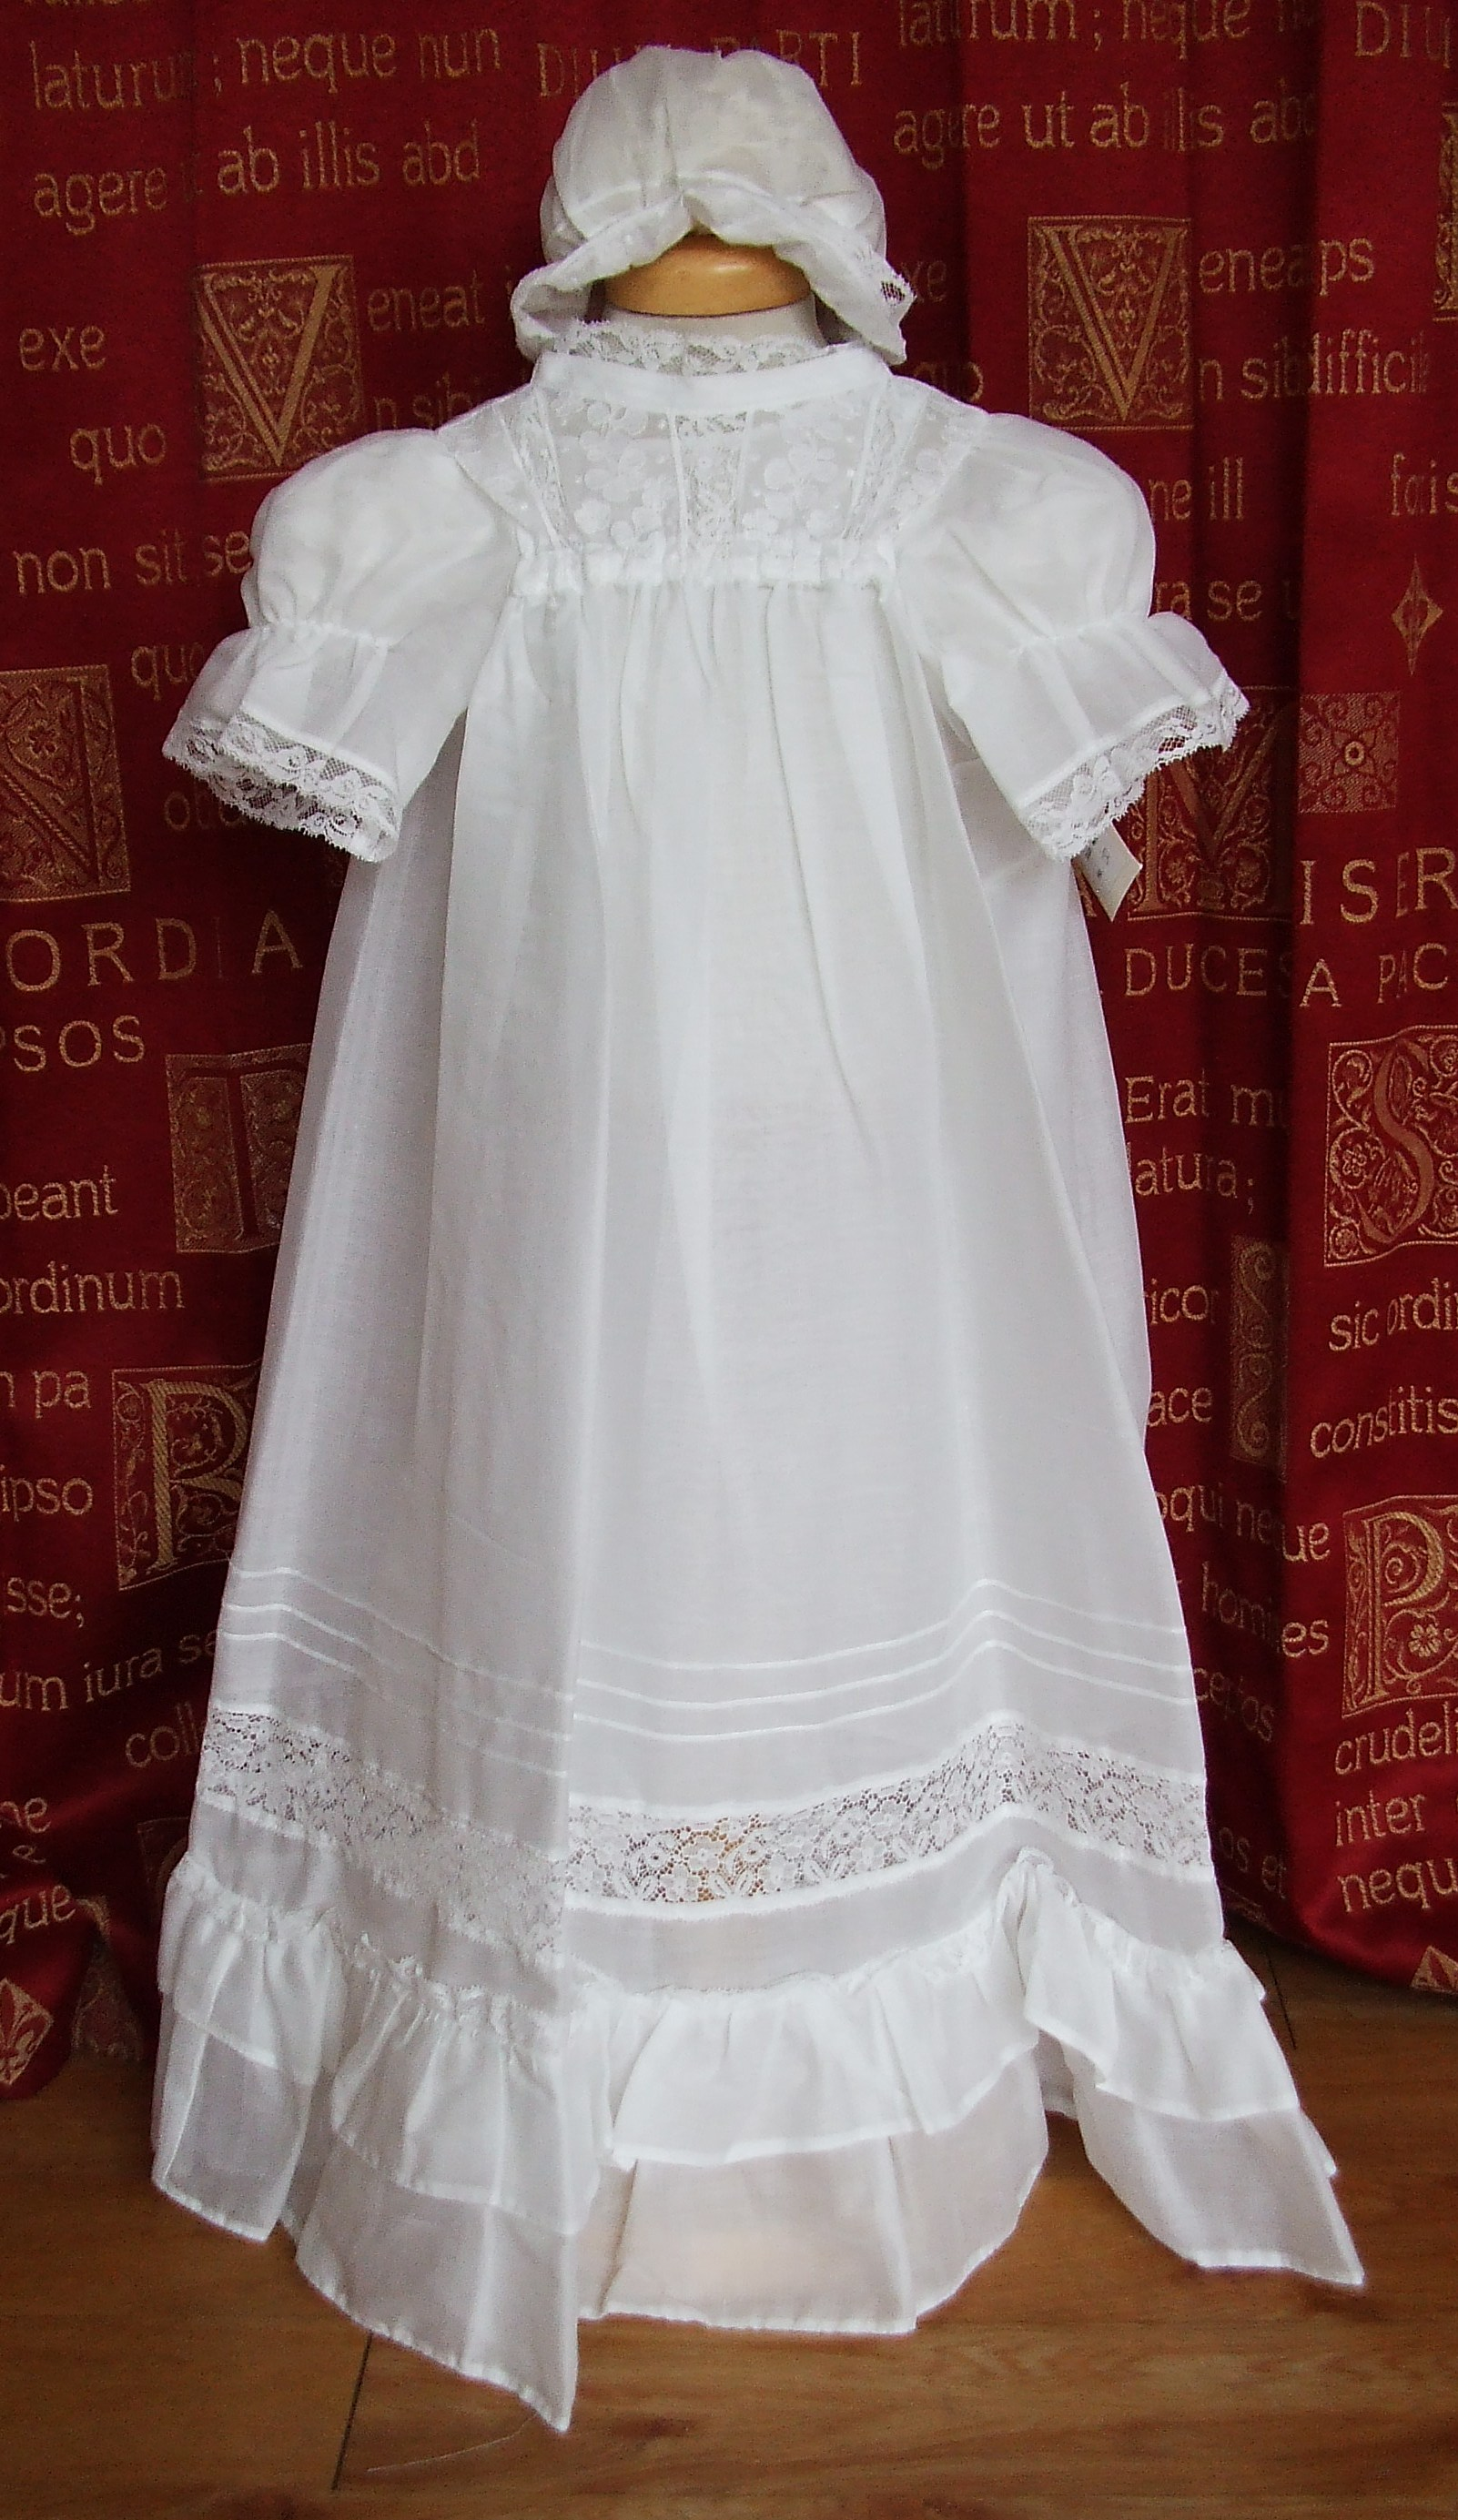 f4004f0b9 Heirloom Christening Gown Collection > Sunday Best Christening Gowns ...